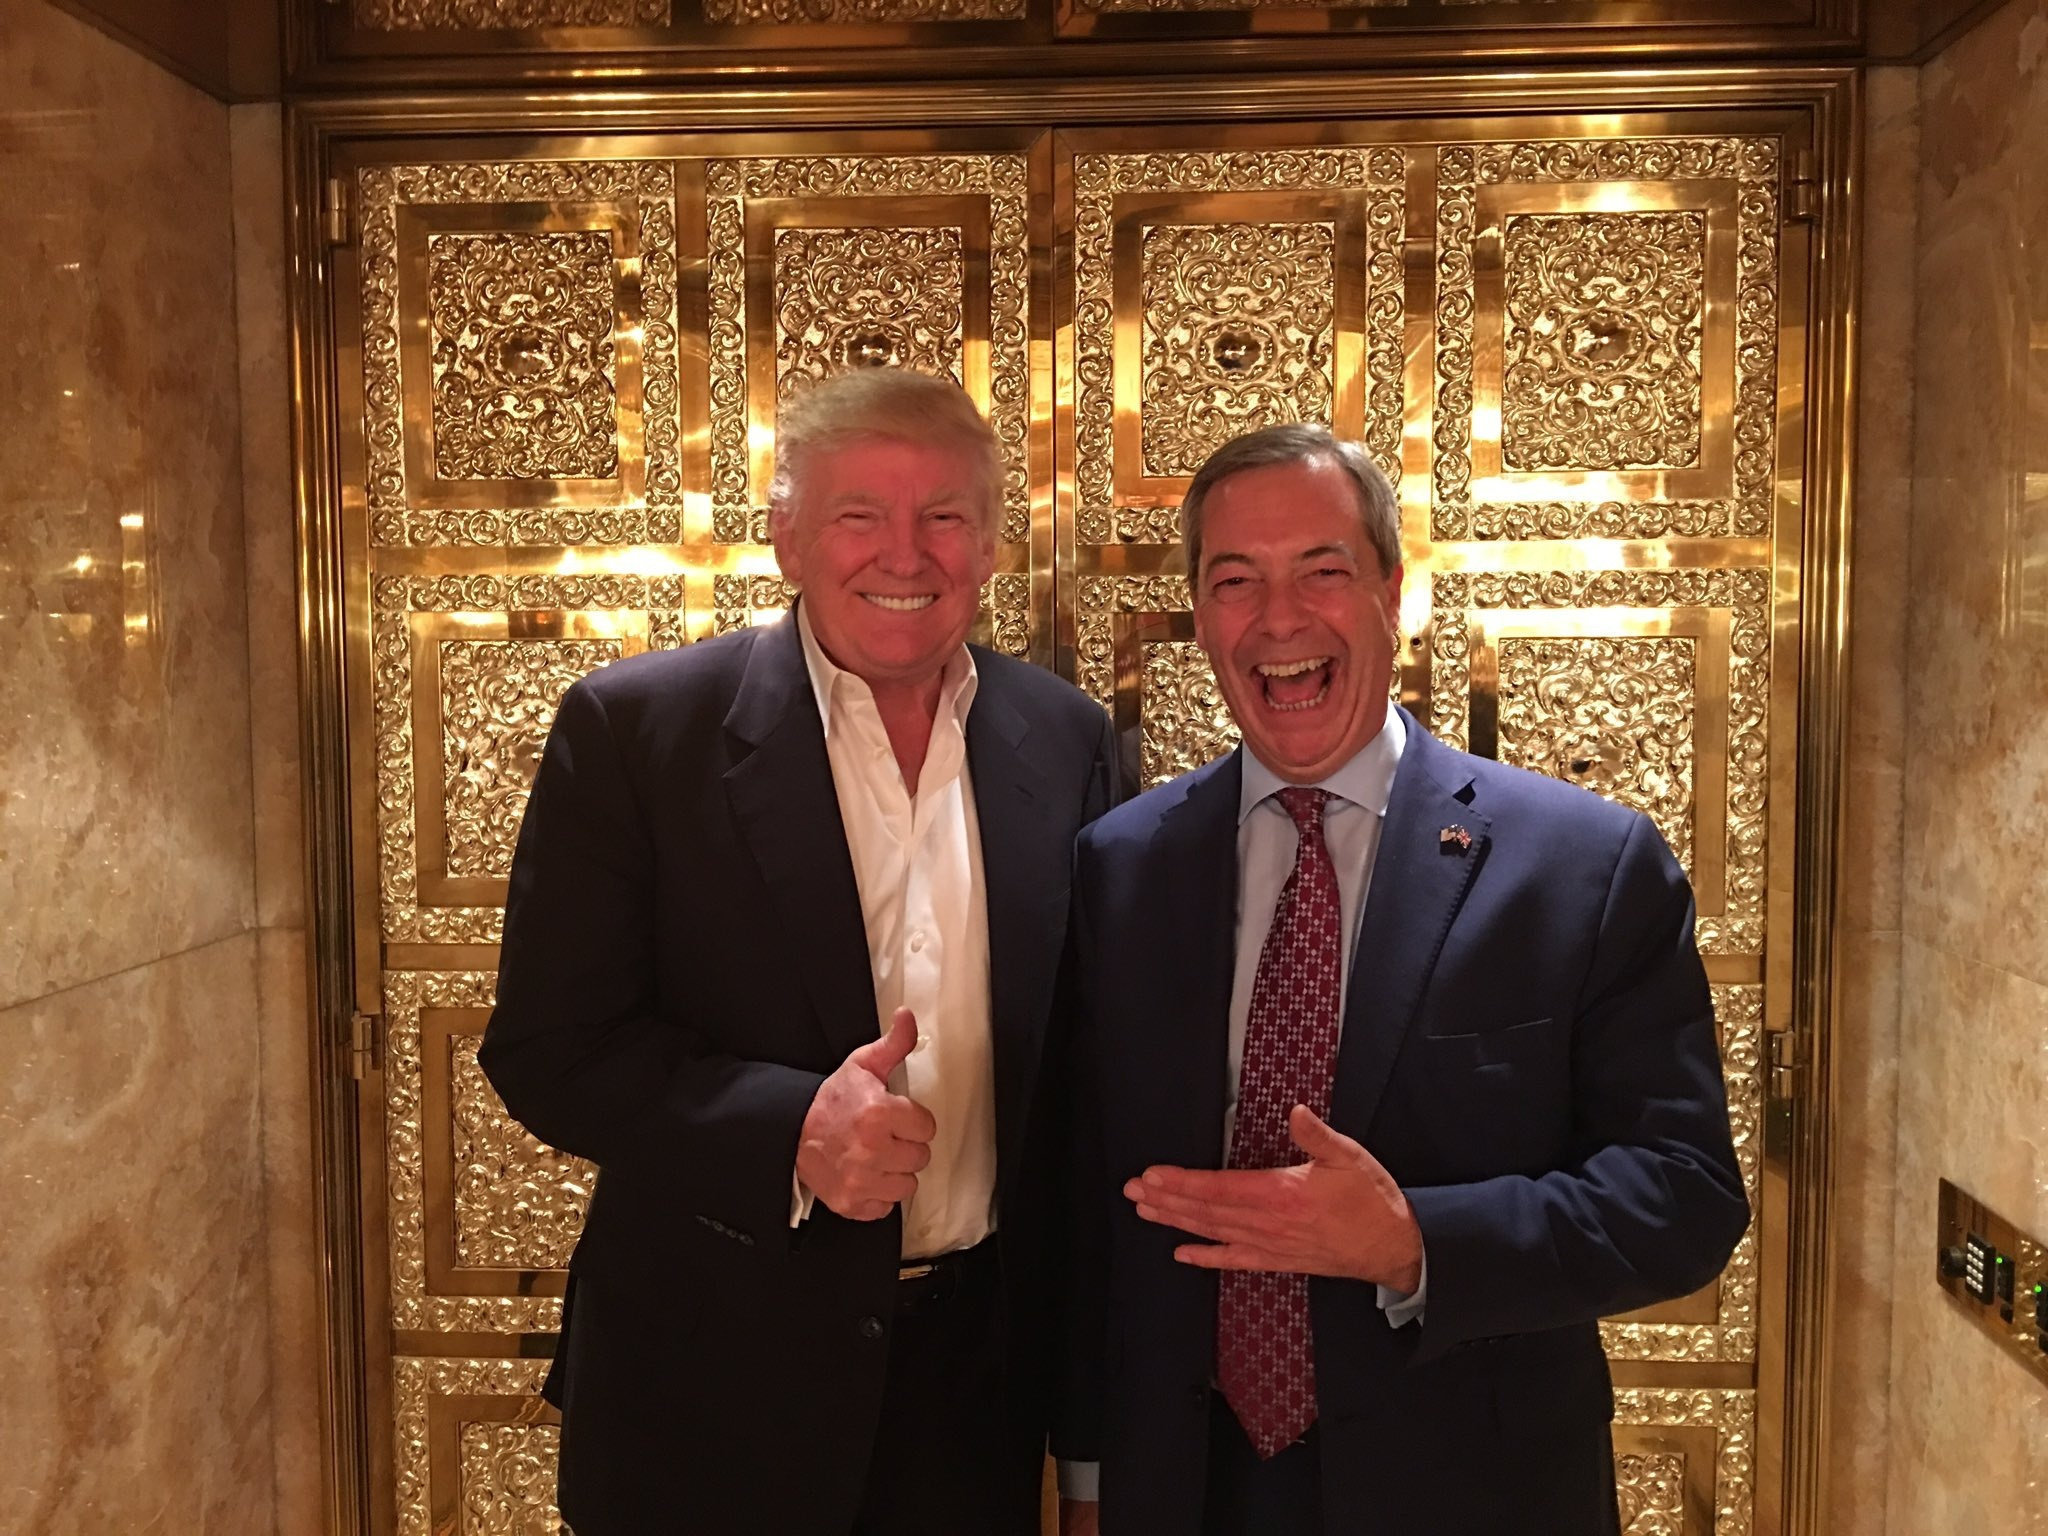 Donald Trump and Nigel Farage try to present an image of being against 'elites'